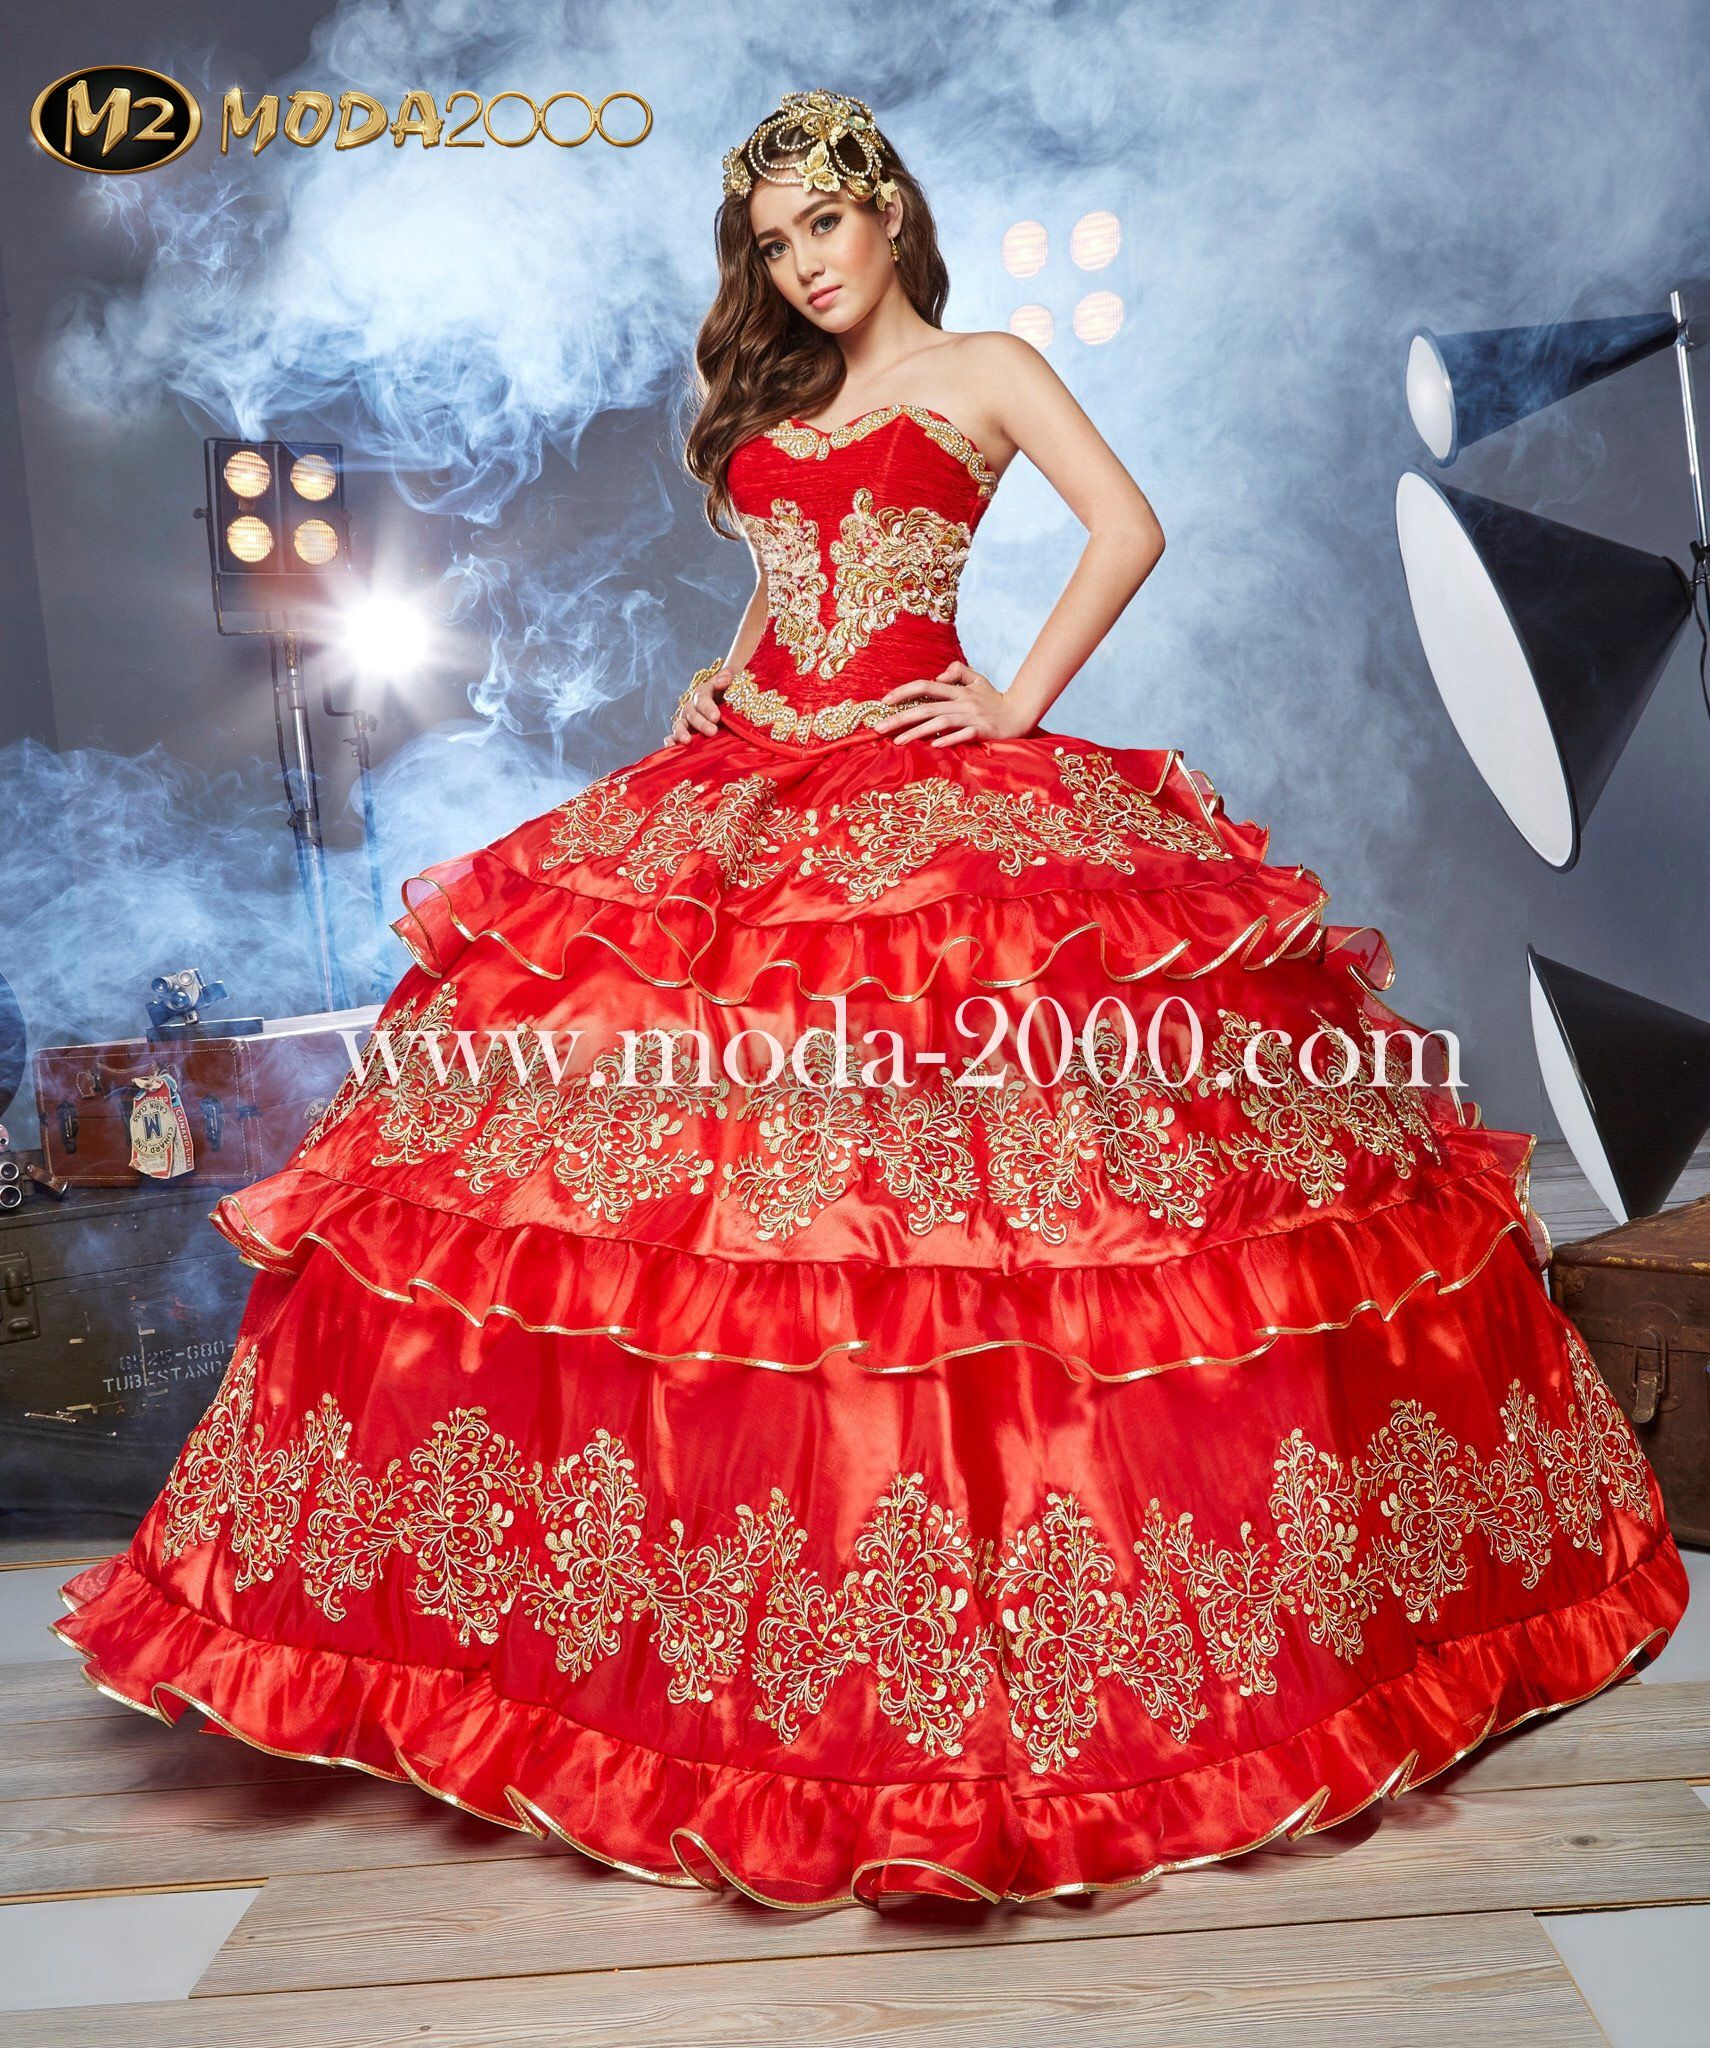 Bejeweled red gold charro quinceanera dress available at